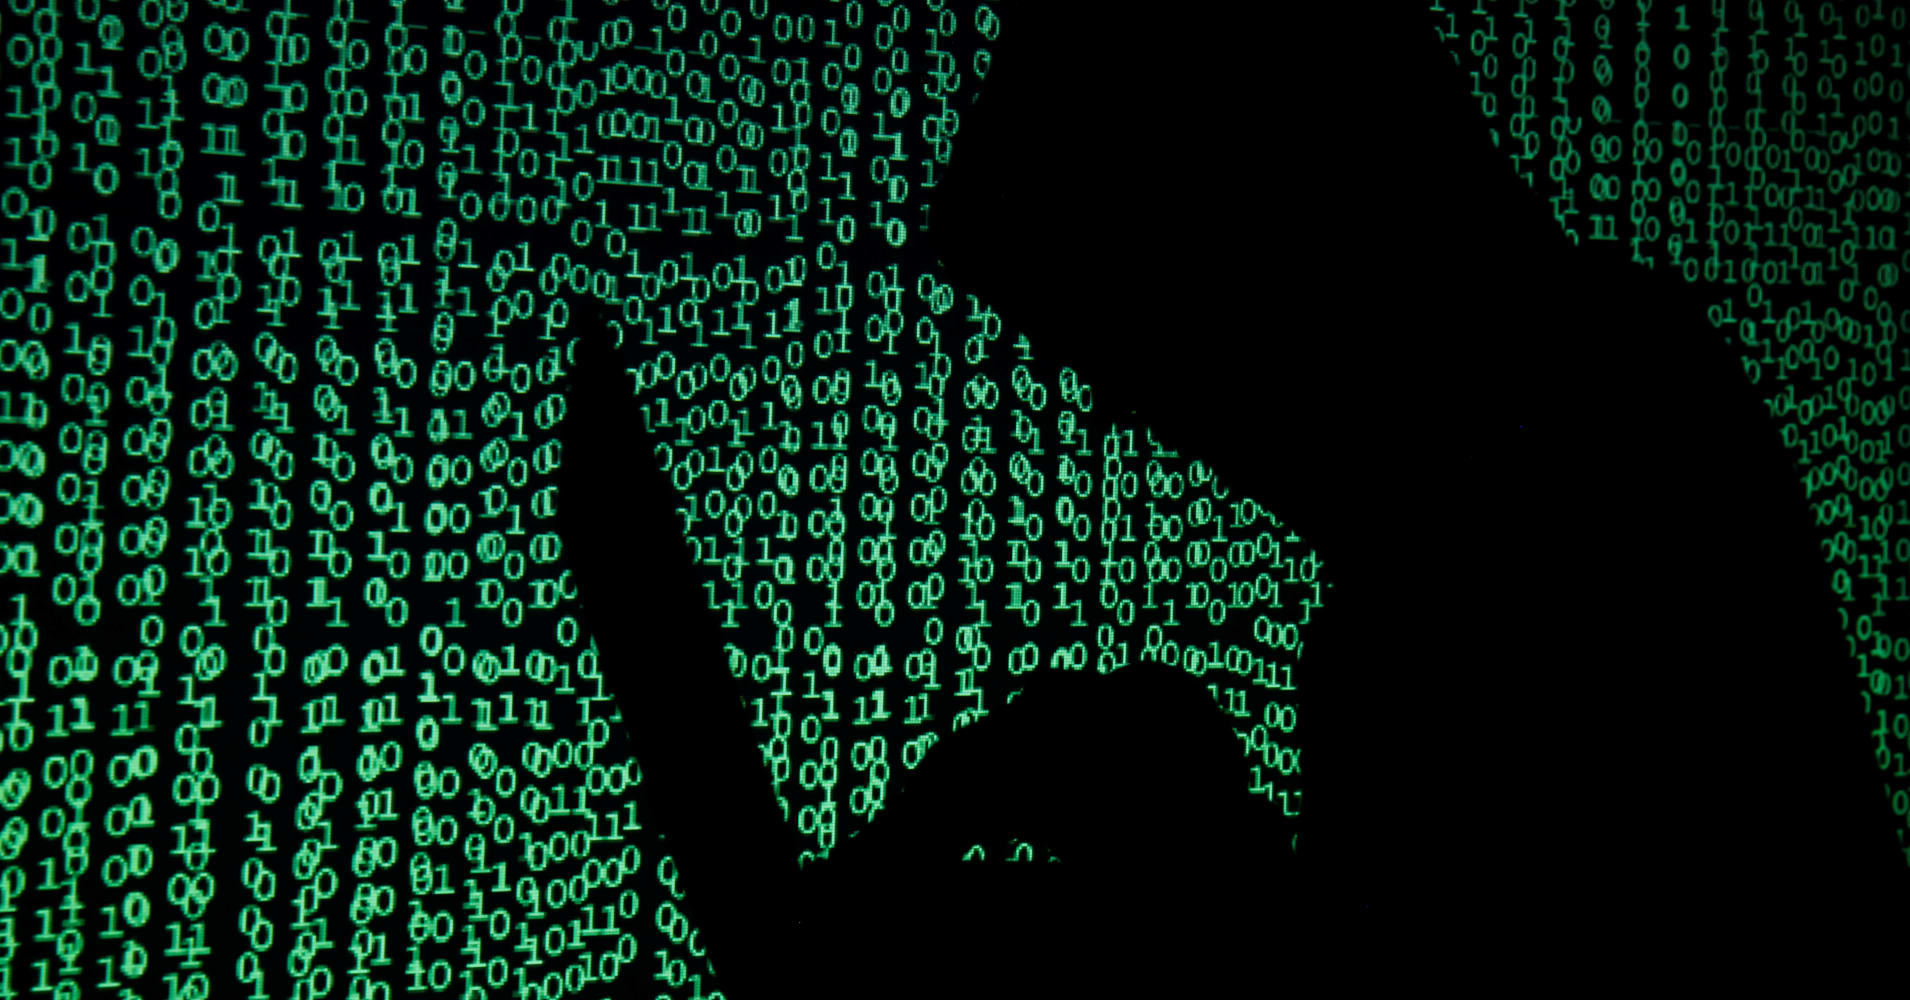 an analysis of the computer crime hacking Online computer hacking forensics training digital crime is more prevalent than ever, and the attacks are getting highly complex security software can't pinpoint it—the eyes and expertise of a trained computer forensics professional is necessary.